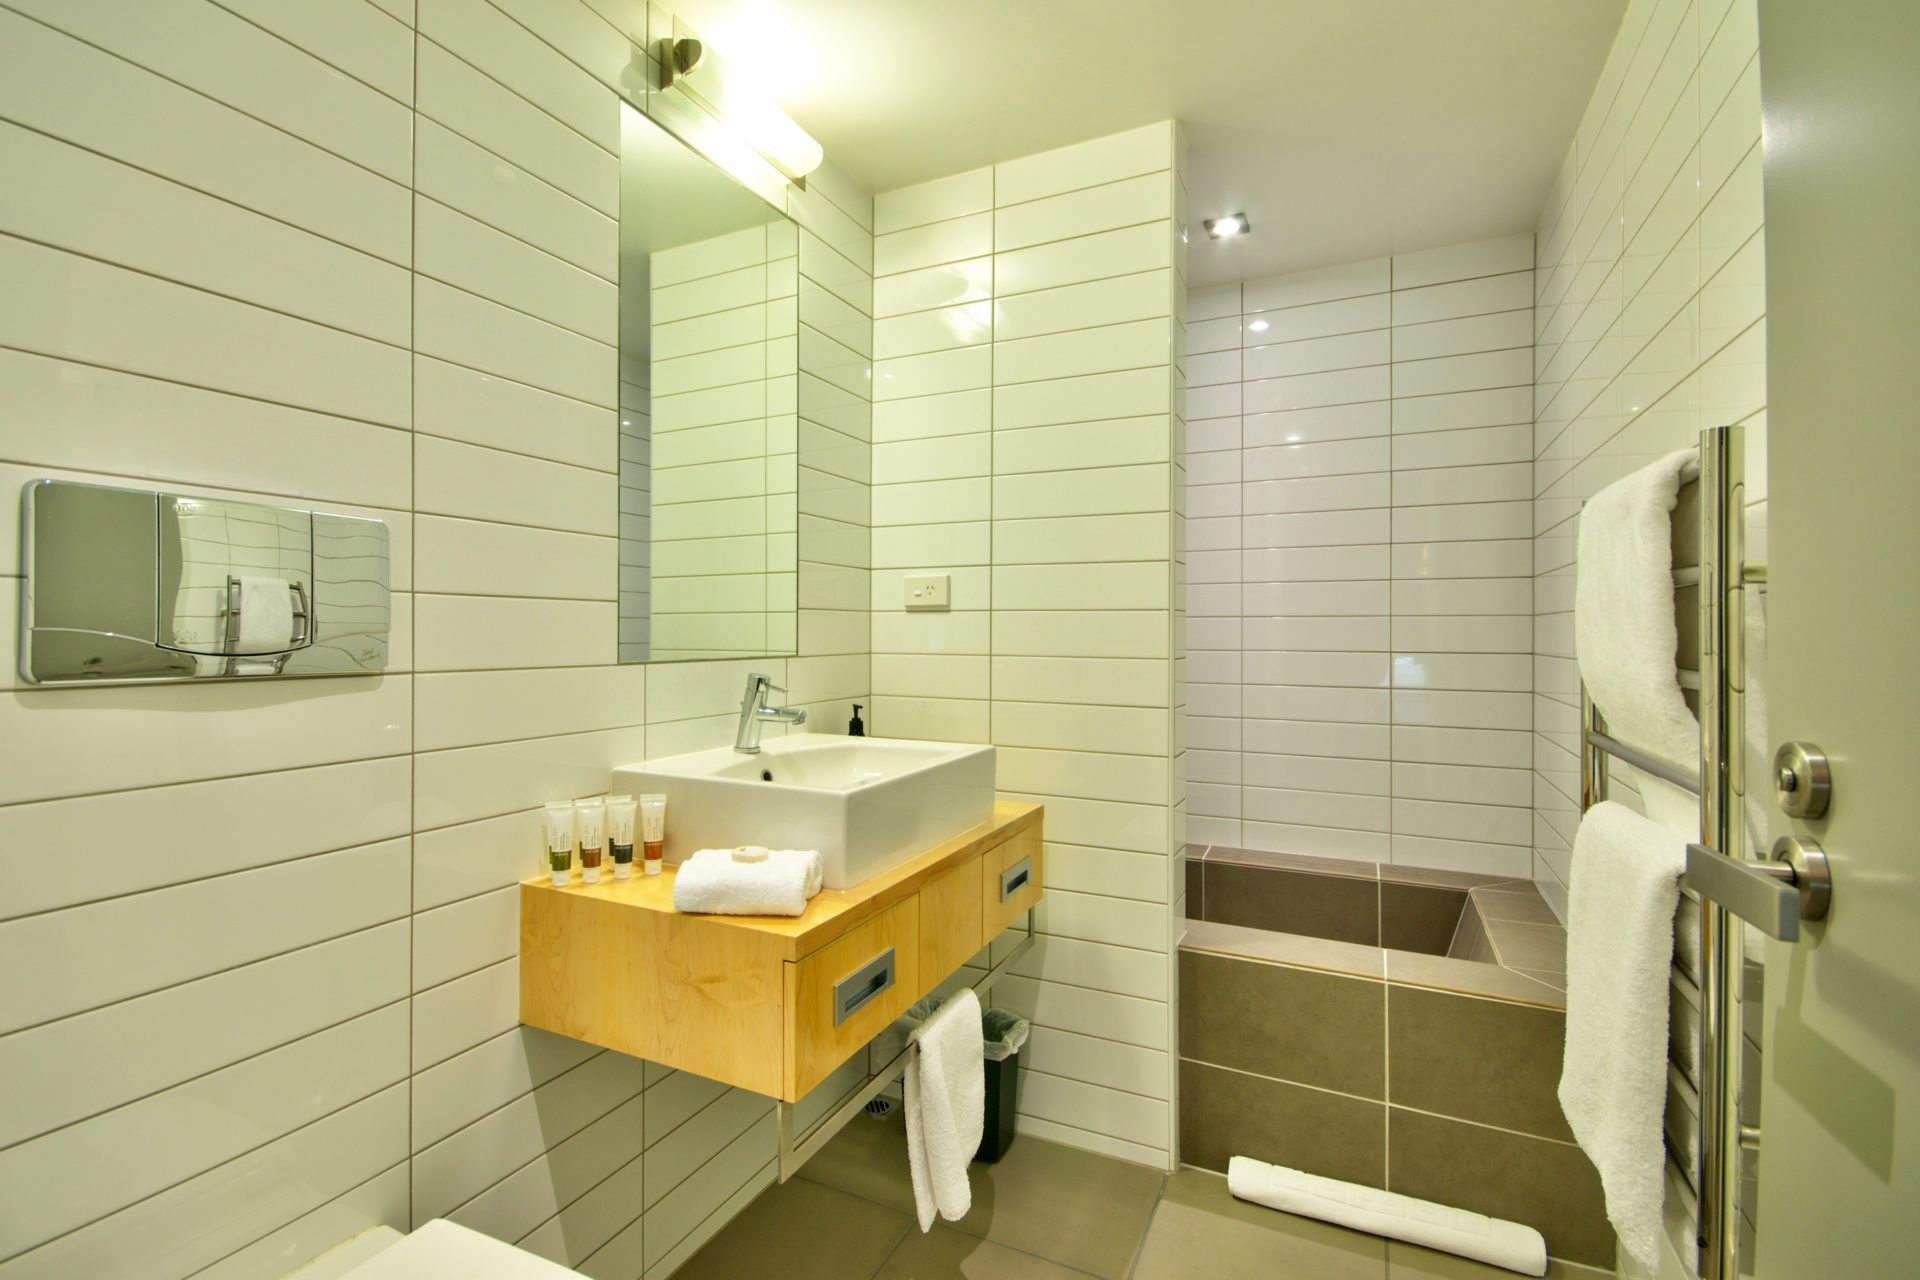 Central Queenstown Pounamu Apartment 203 - 2 Bedroom